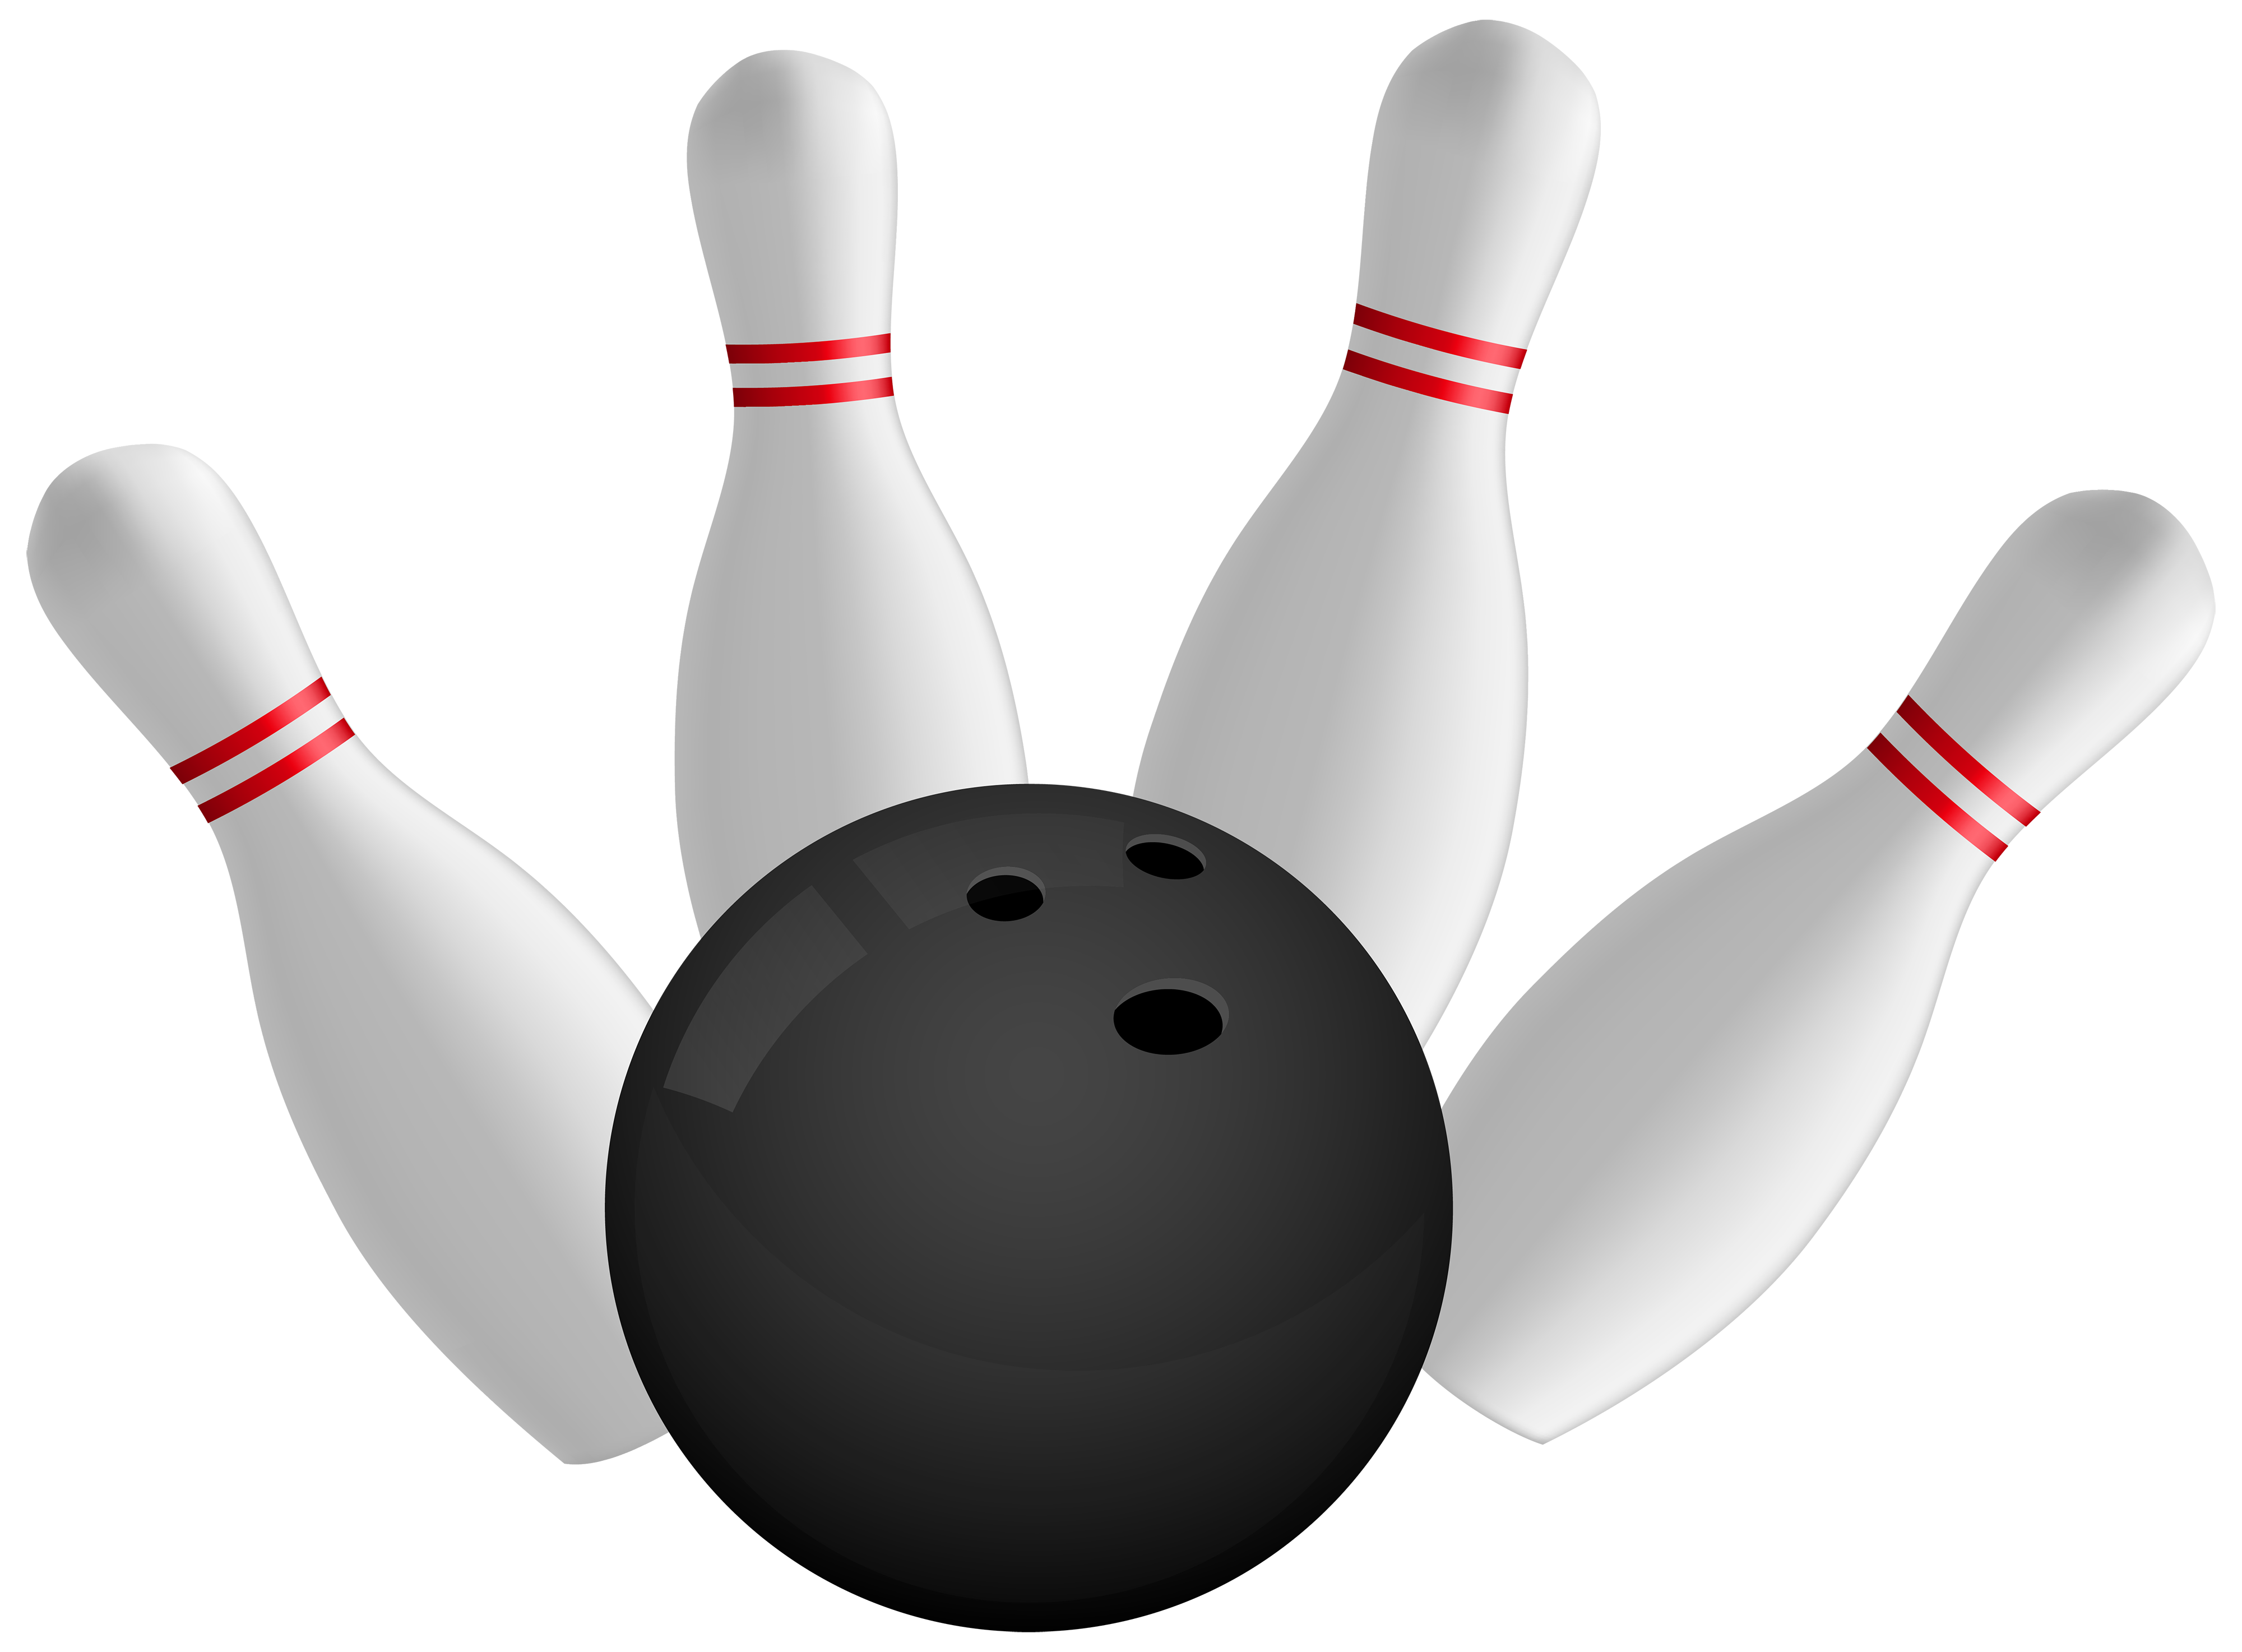 Ball and pins png. Floor clipart bowling alley